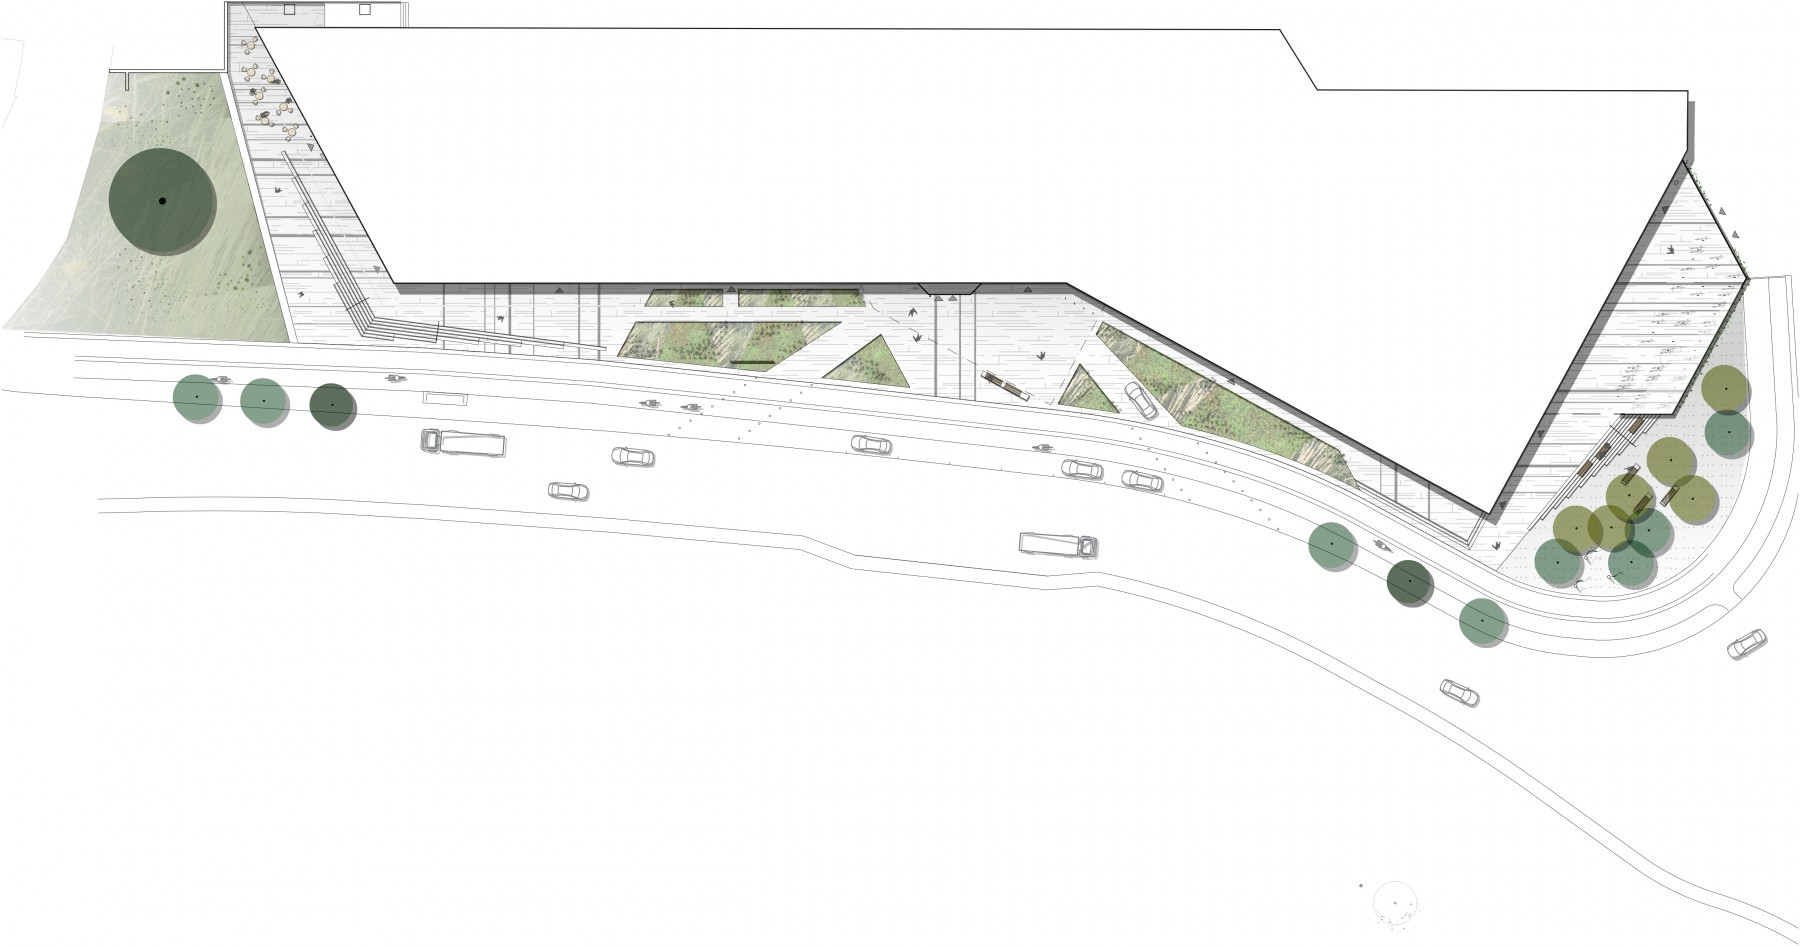 swedbank_LAND_2013_2014_plan